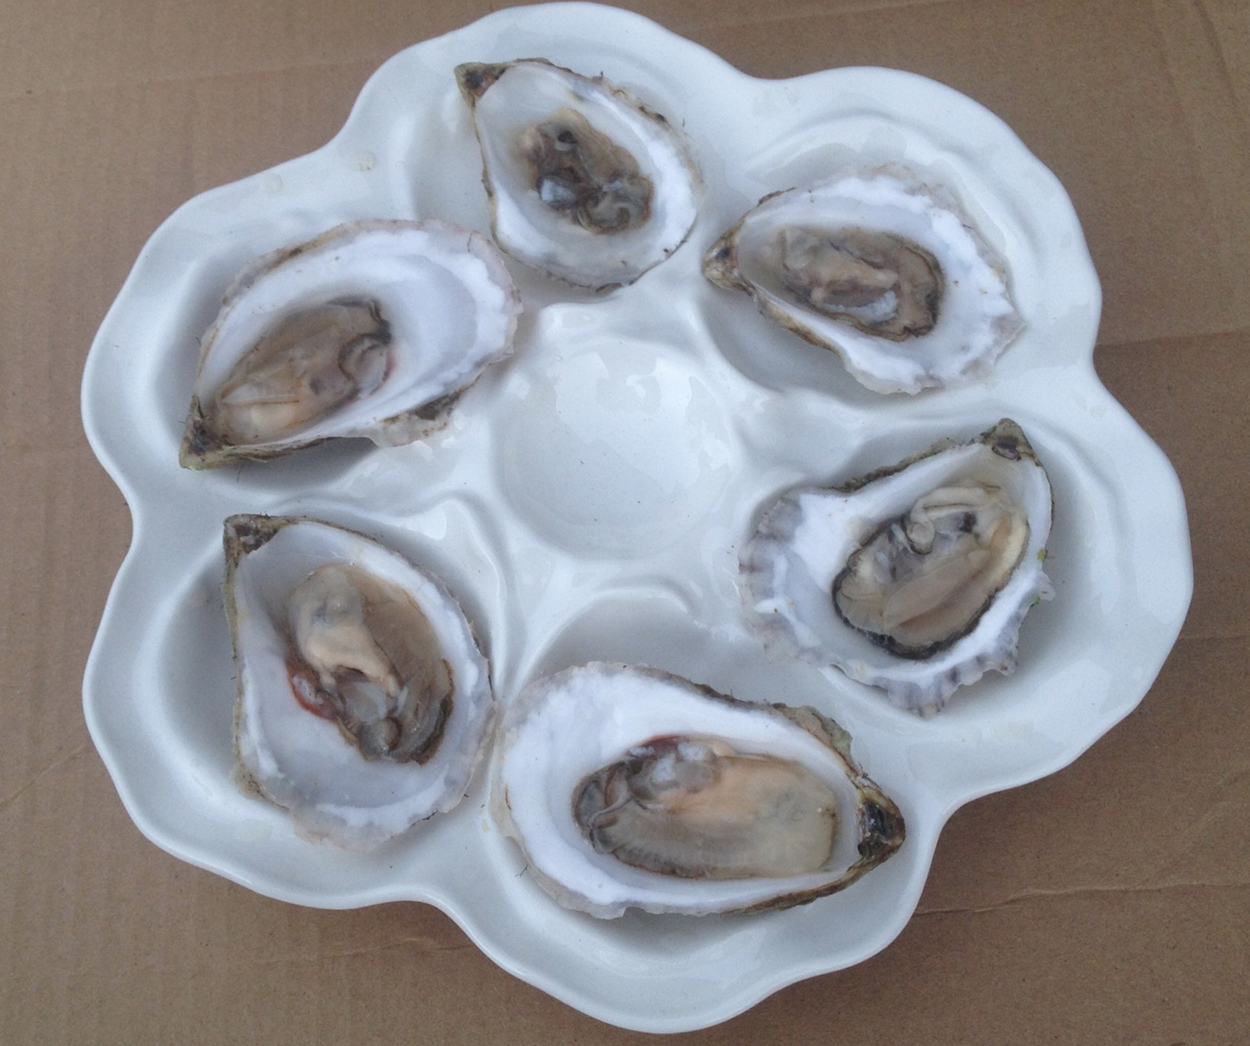 Oysters grown and sold by a 2013 student